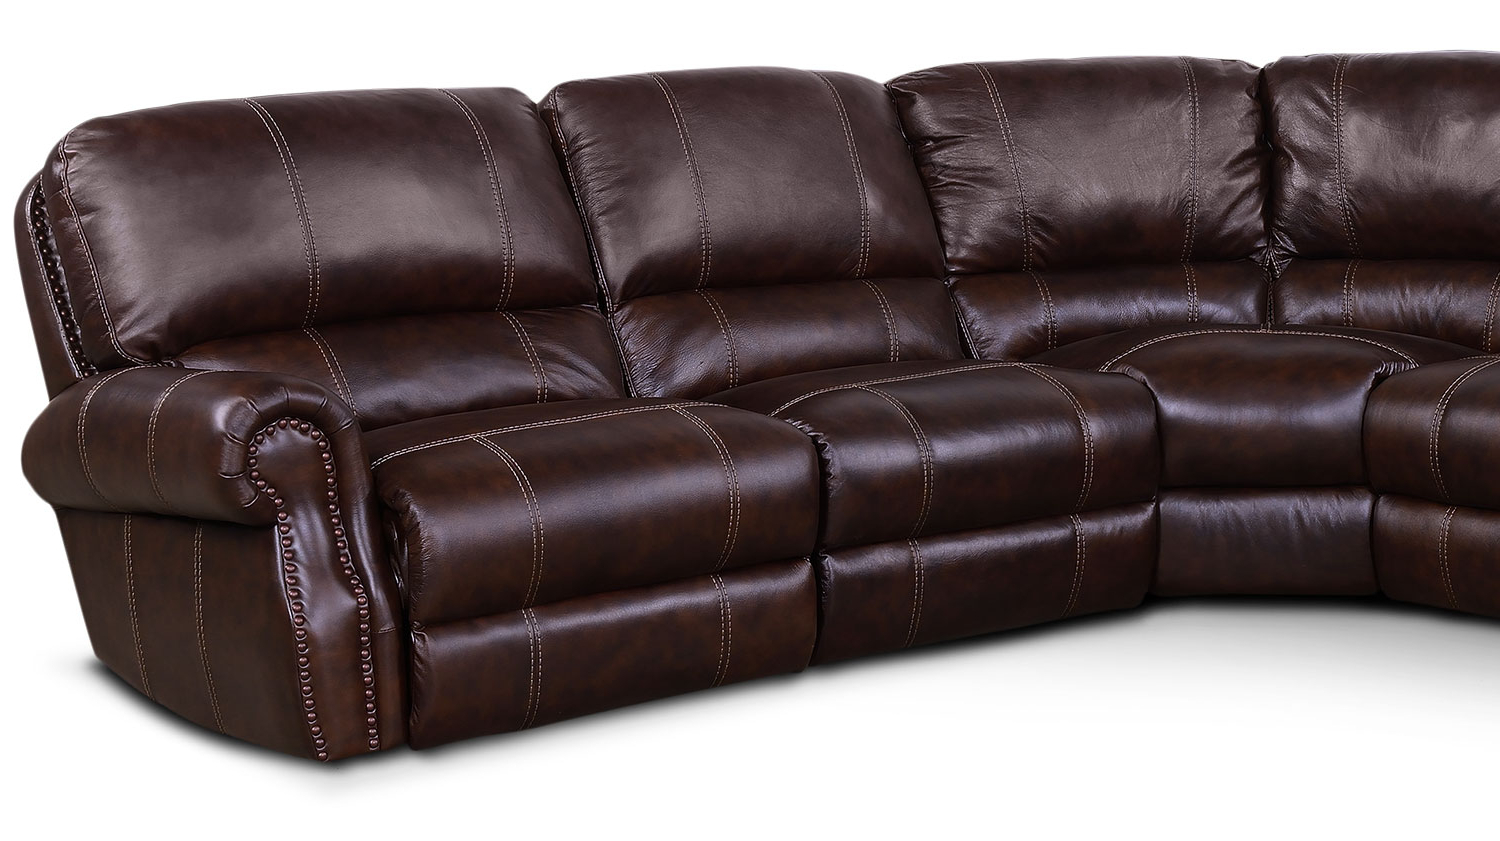 Trendy Norfolk Grey 6 Piece Sectionals With Laf Chaise Regarding Dartmouth 6 Piece Power Reclining Sectional With 2 Reclining Seats (Gallery 12 of 20)